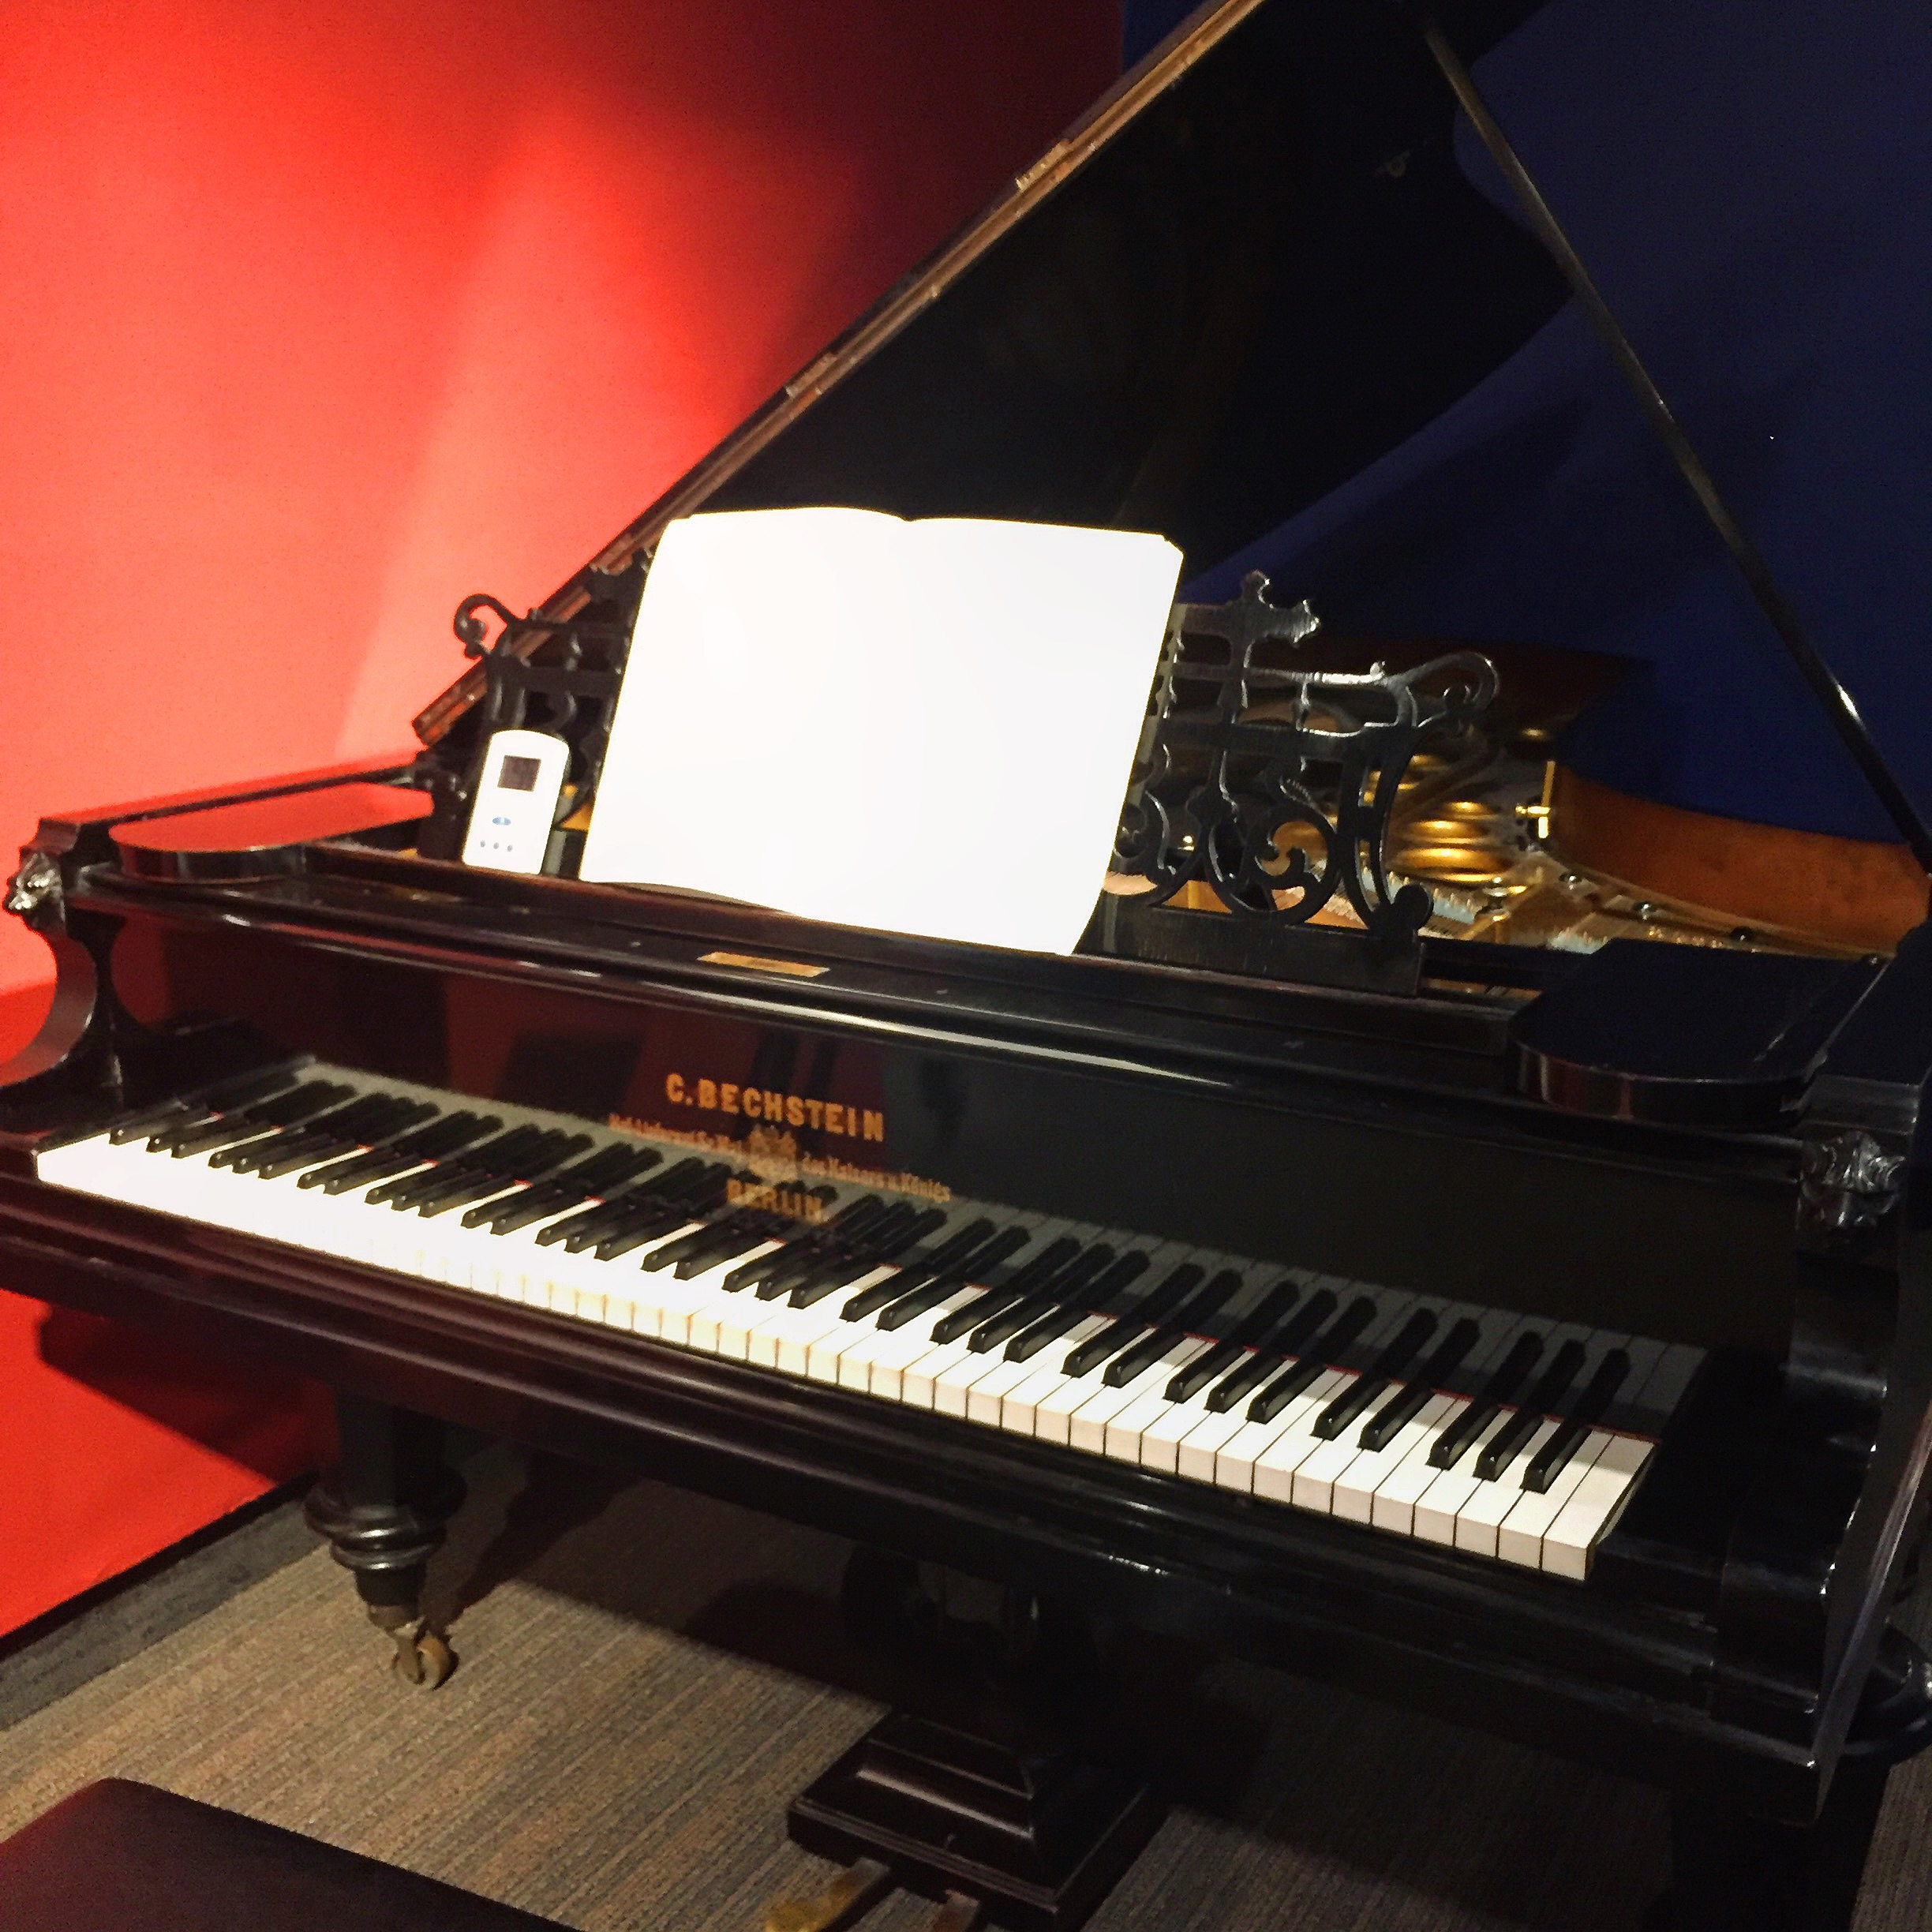 I played my choro on this 1878 Bechstein at the Schubert Club Museum in St. Paul when I visited over the weekend - this piano has also been played by Brahms, Bartok, Liszt, and other famous composers and pianists!